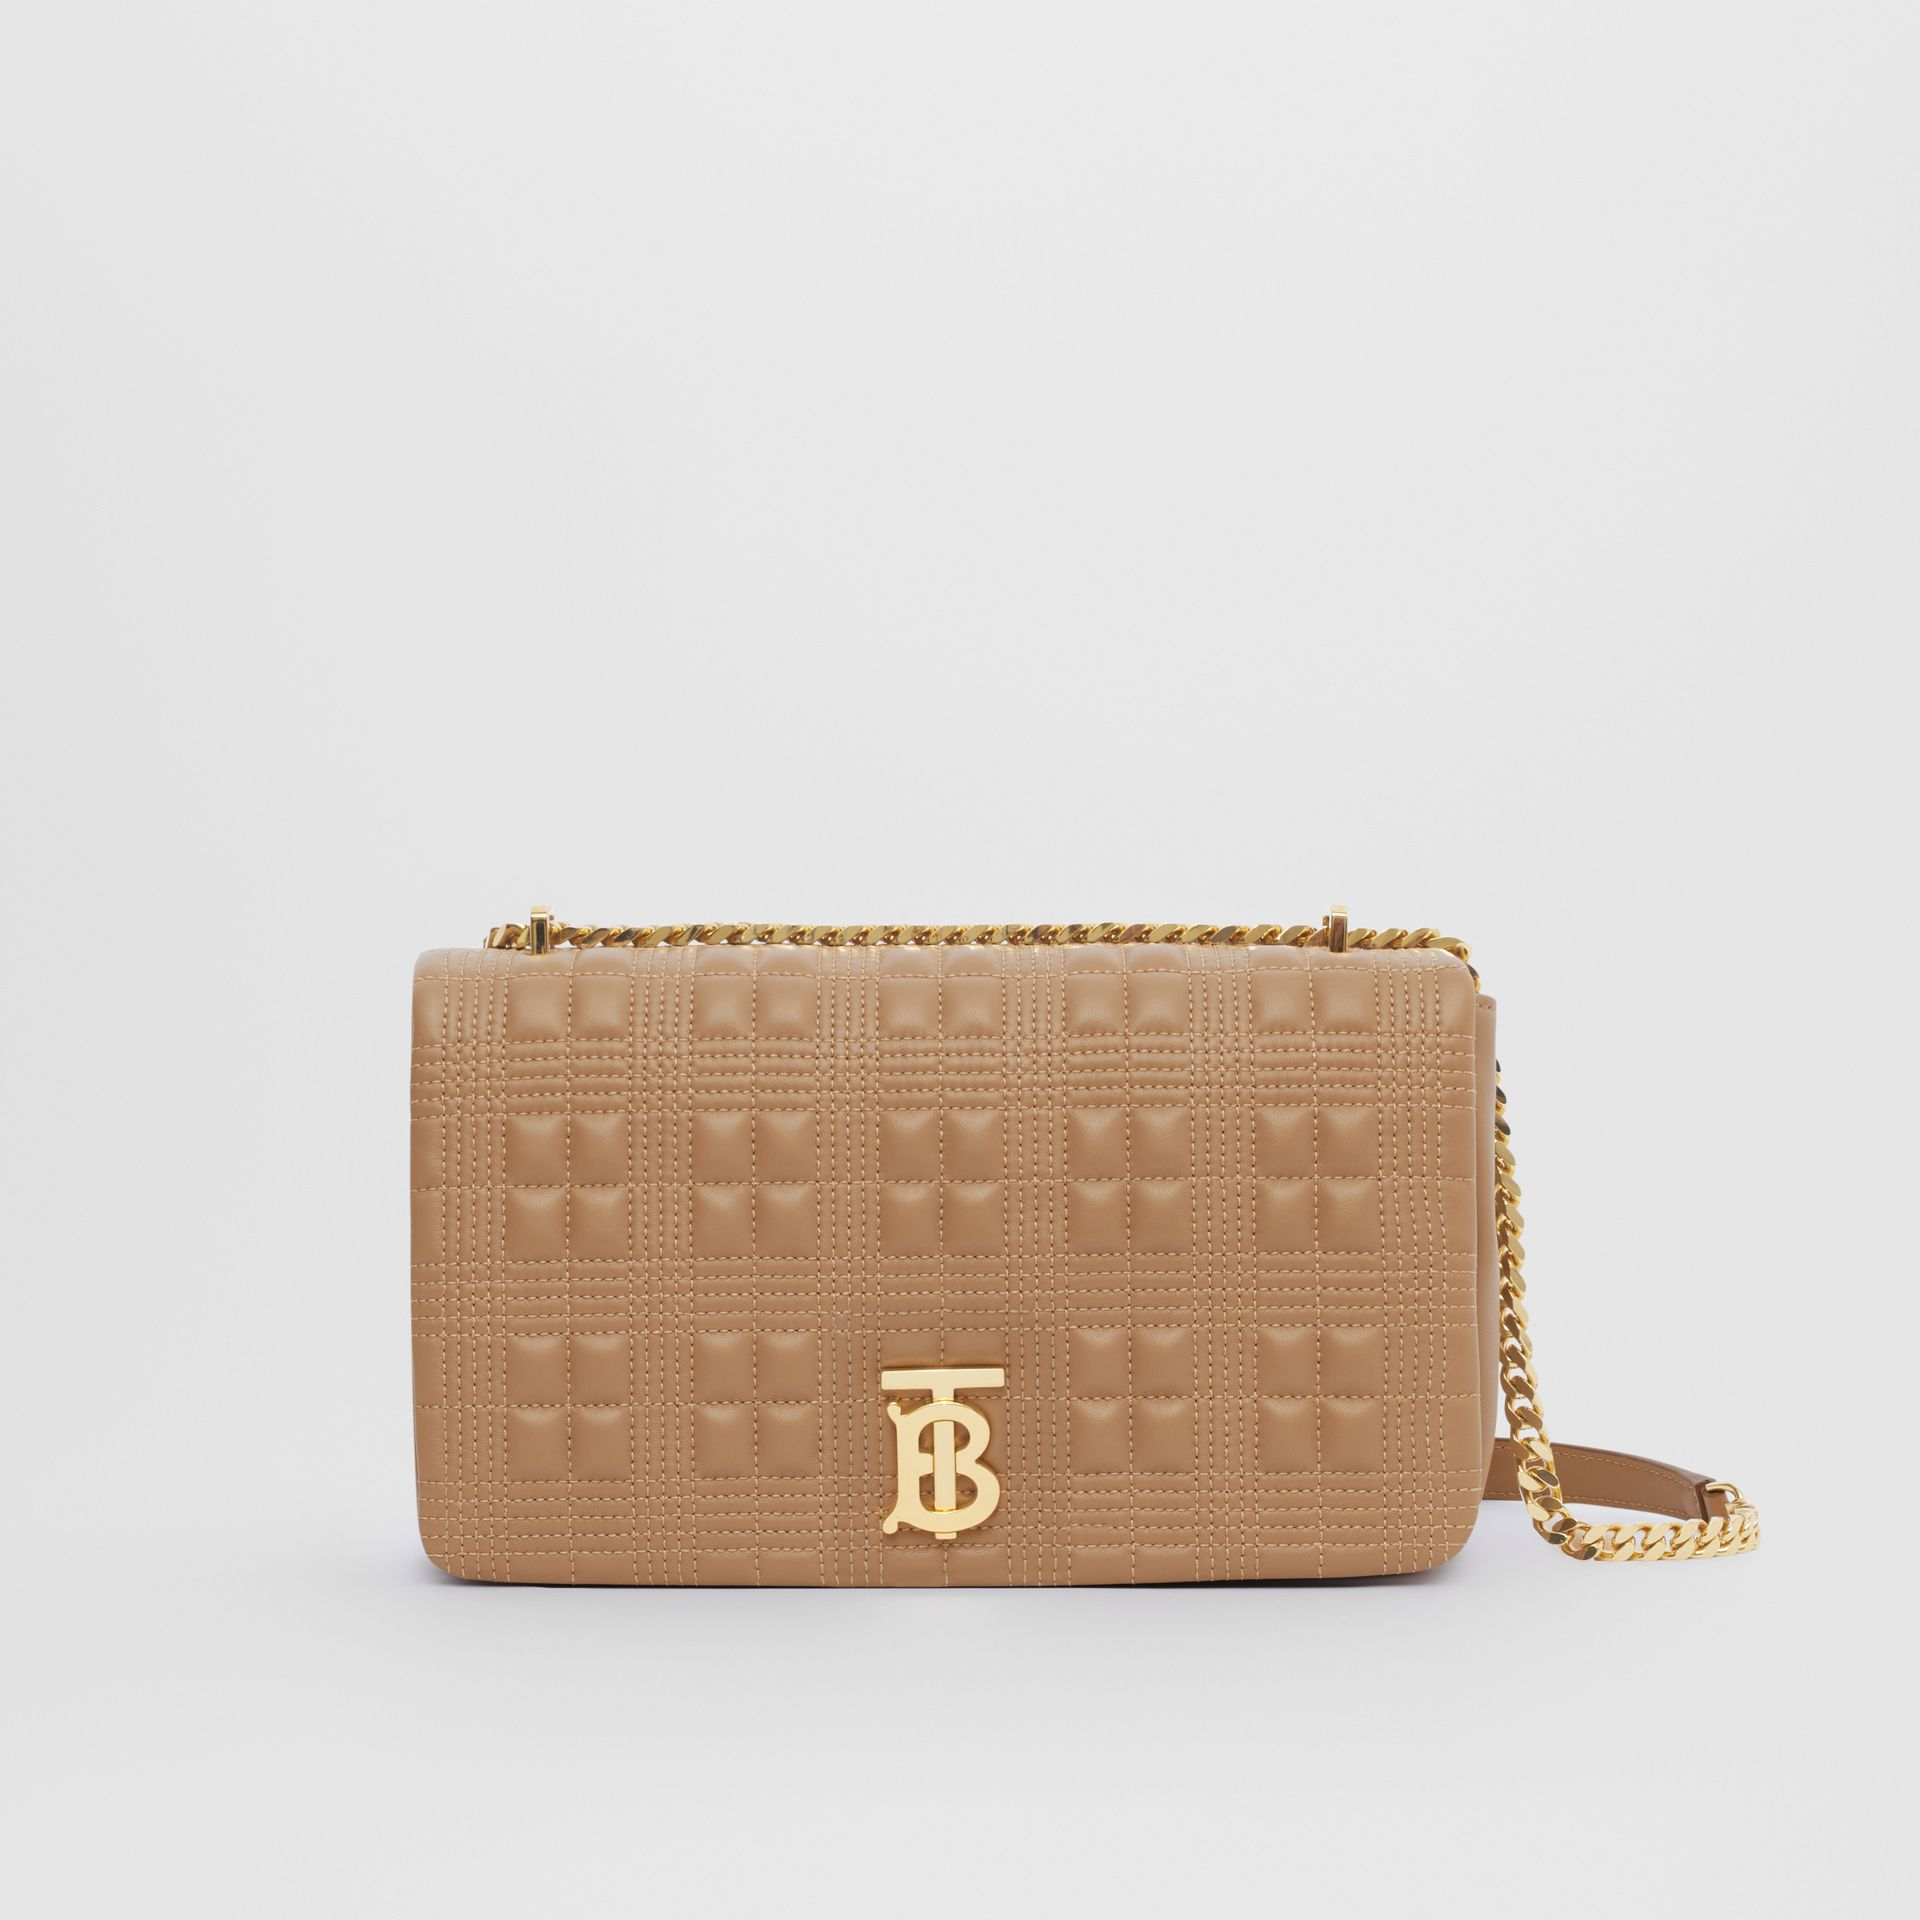 Medium Quilted Lambskin Lola Bag in Camel - Women | Burberry - gallery image 0